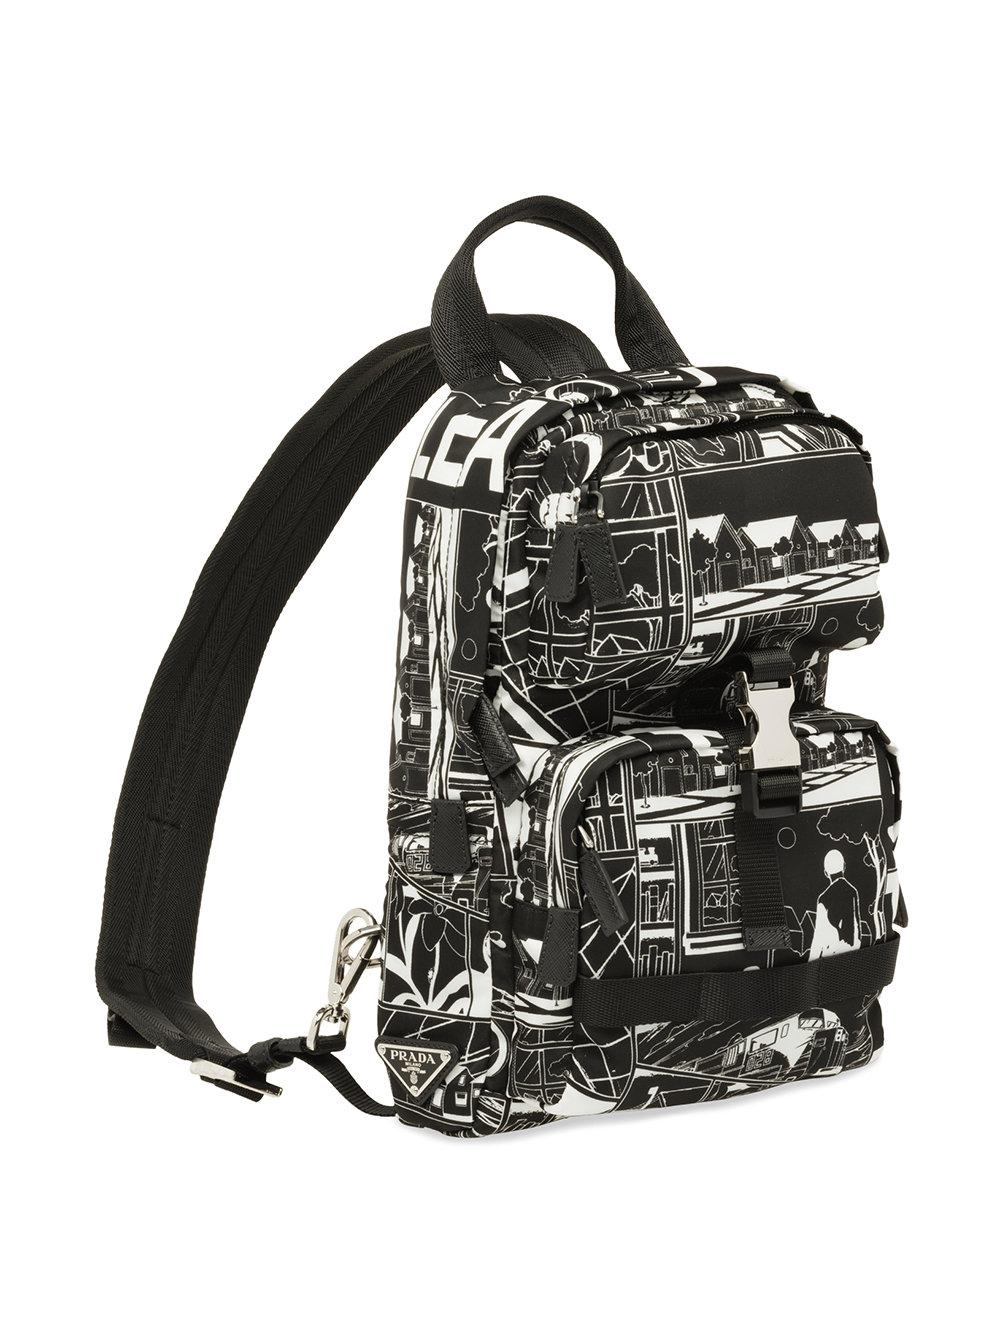 Prada Printed one shoulder backpack Best Place Online Buy Cheap Looking For New Cheap Online Order Cheap Online Lowest Price Cheap Online qGb9qrZoO